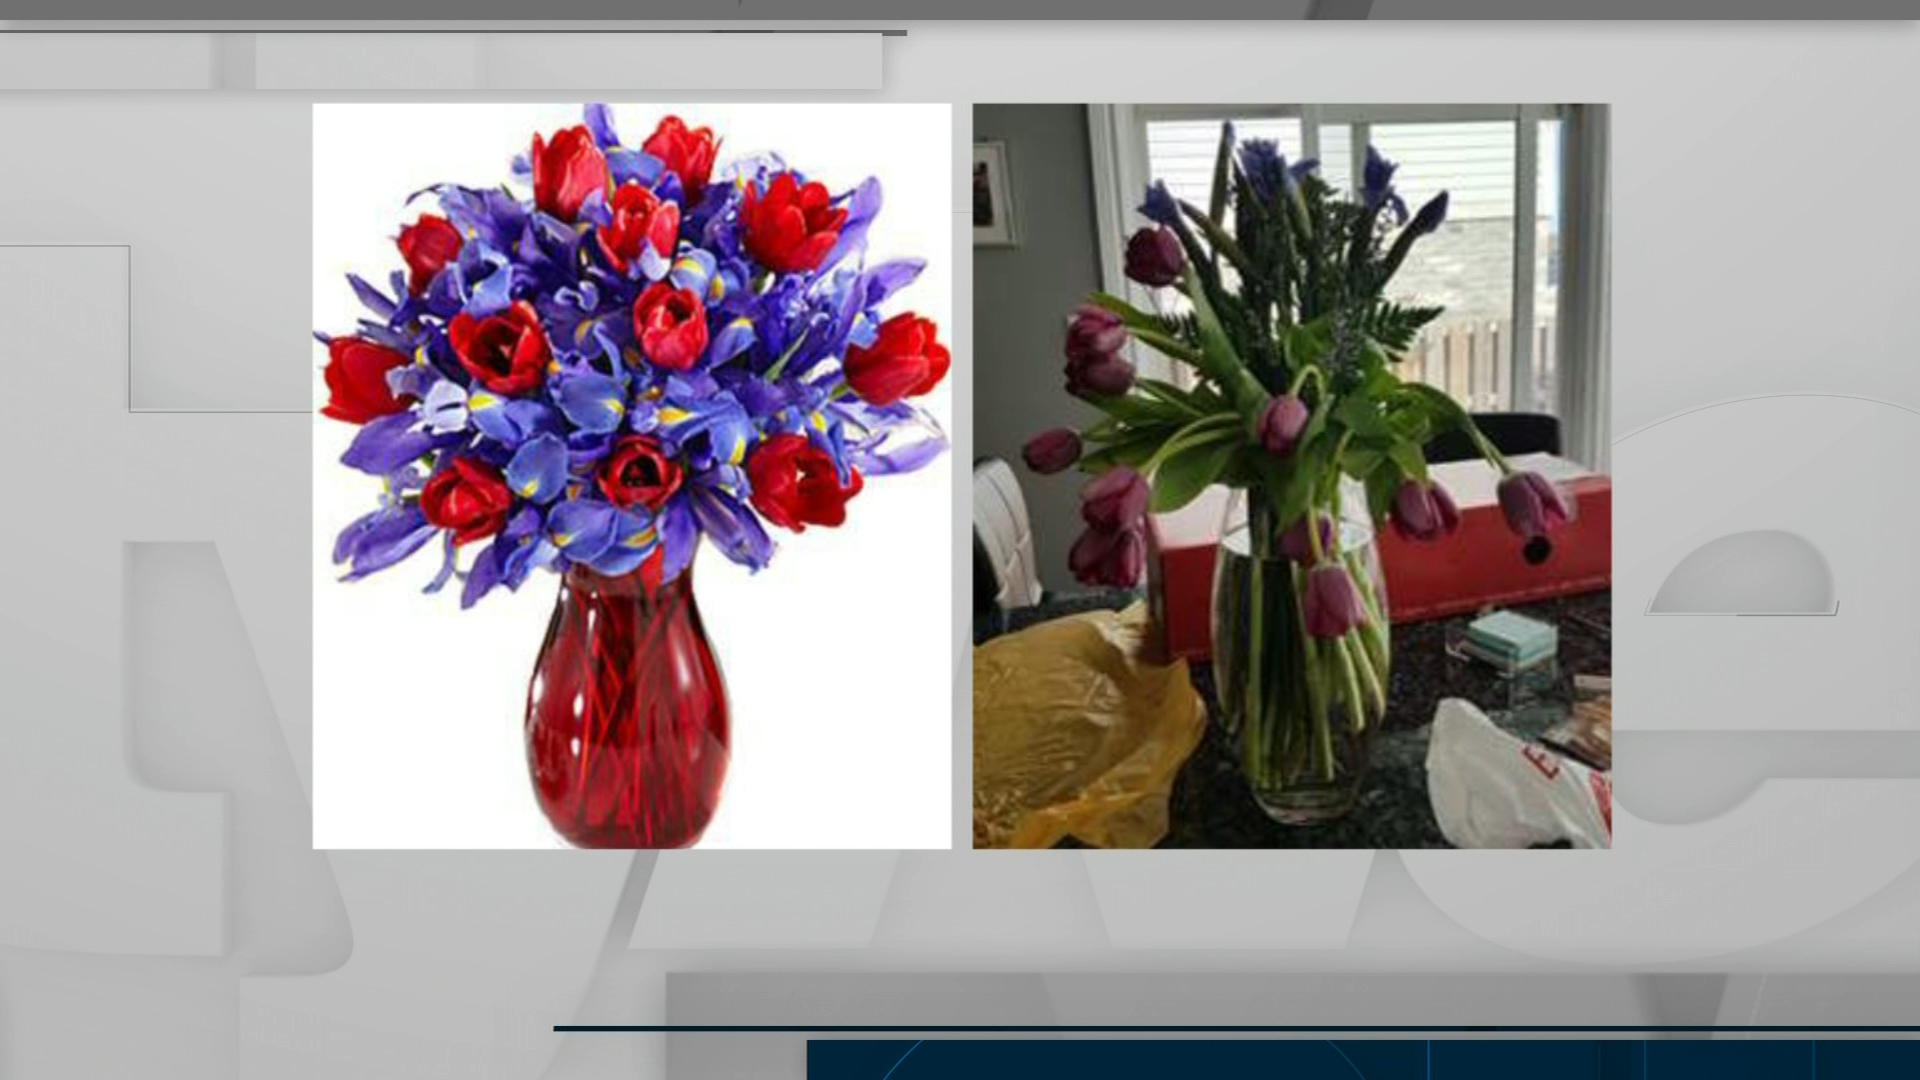 Dying on arrival flower delivery service facing numerous mothers dying on arrival flower delivery service facing numerous mothers day complaints citynews toronto izmirmasajfo